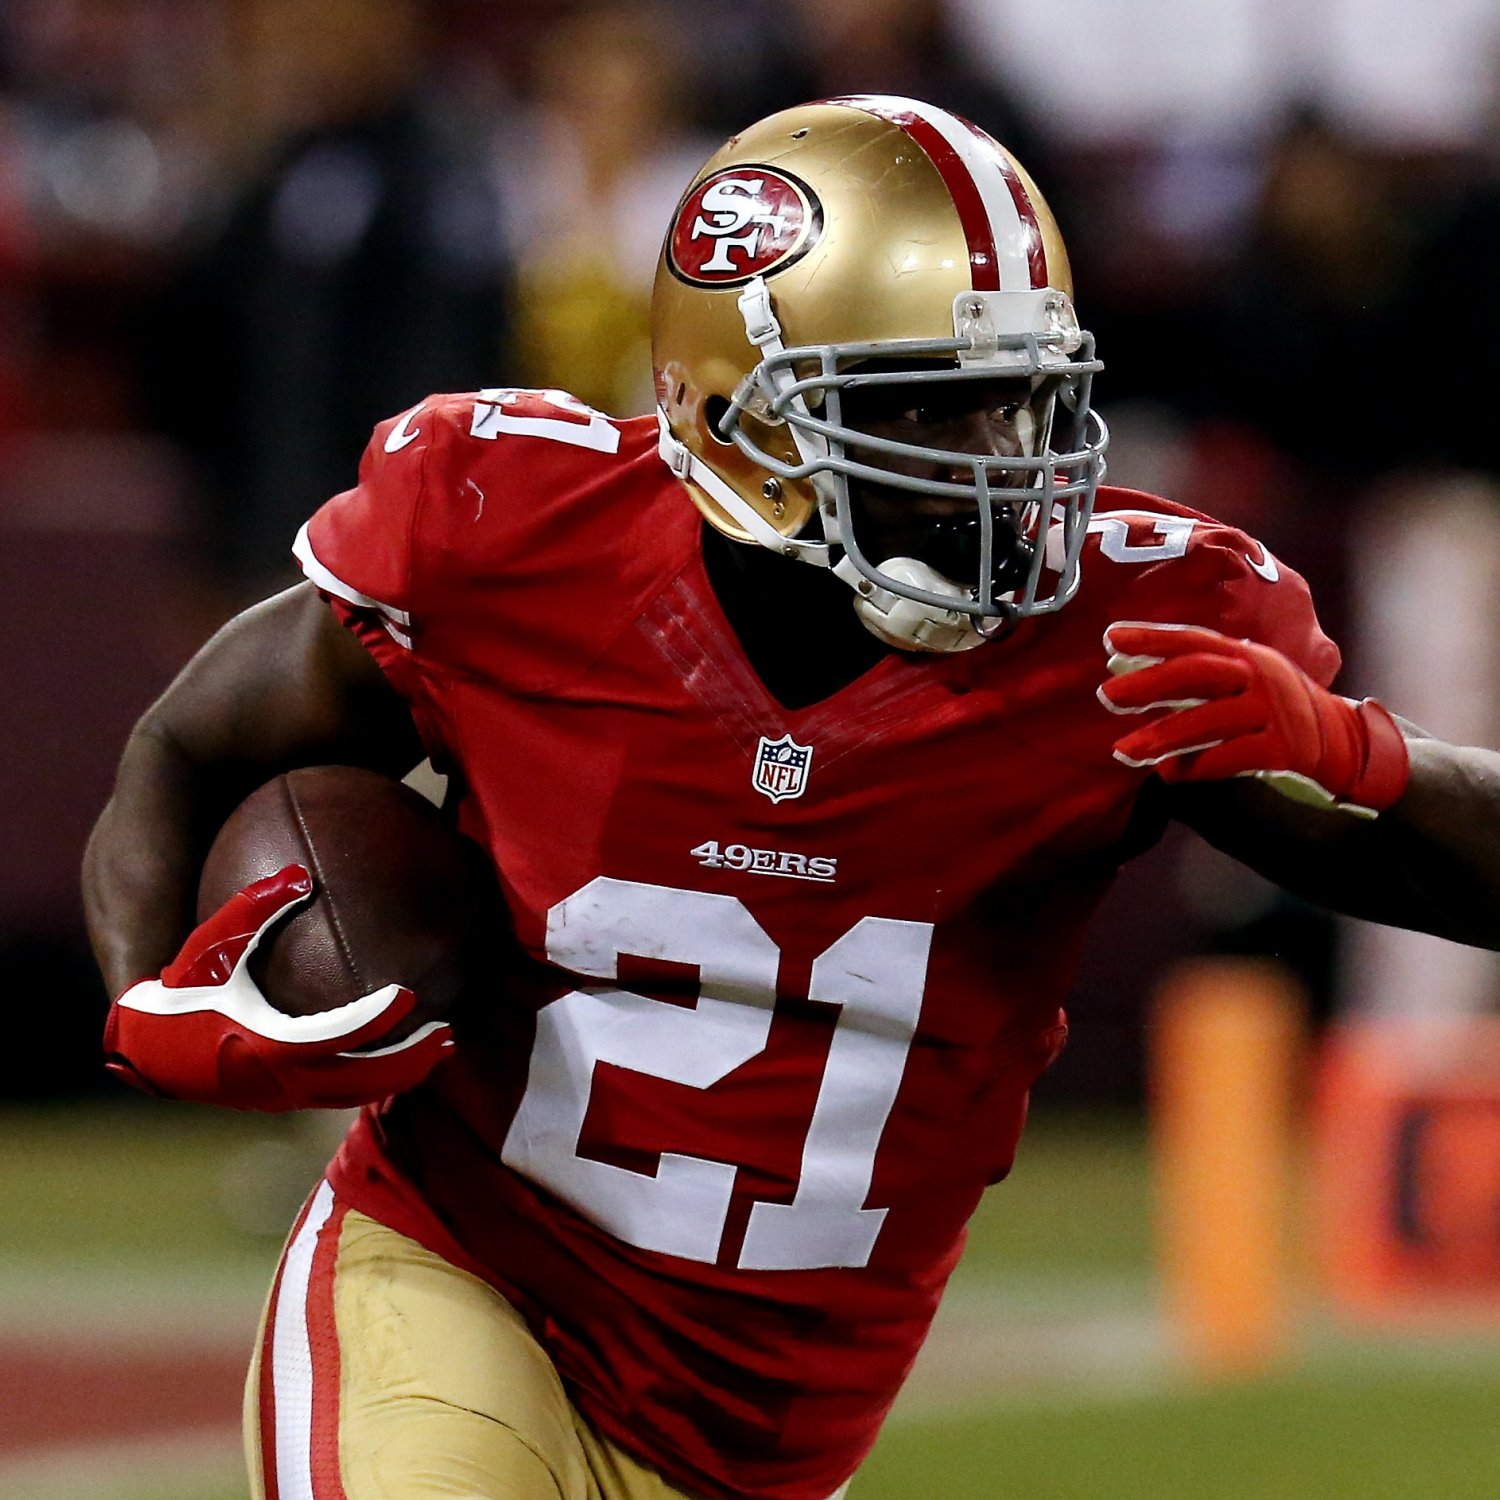 49ers Iphone Wallpaper Hd Frank Gore Wallpapers High Quality Download Free